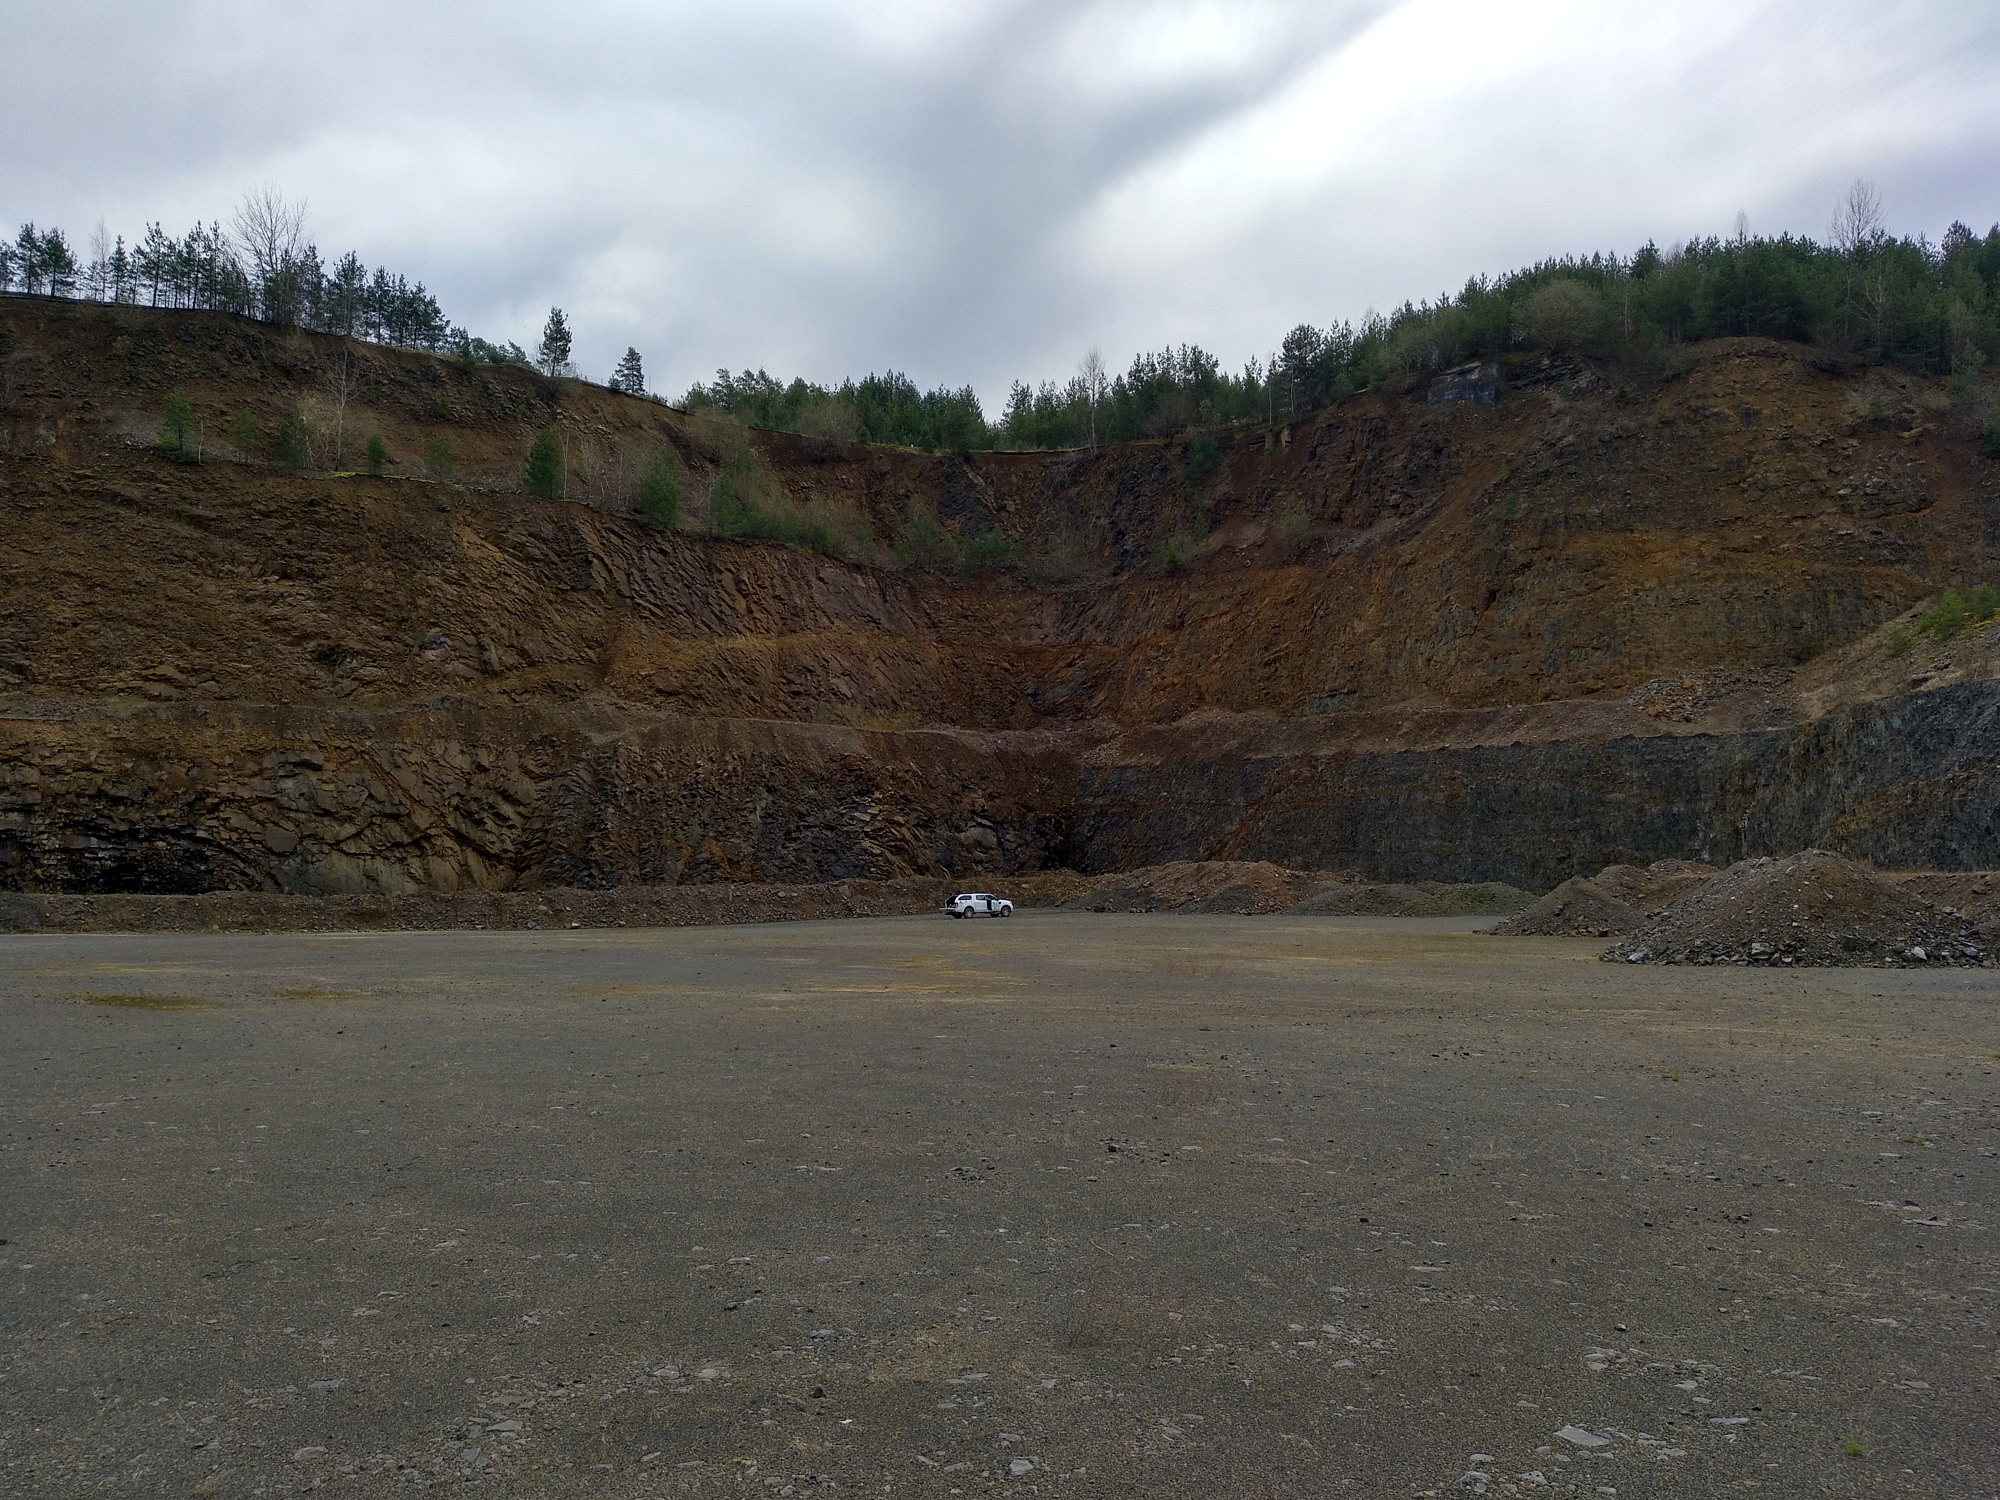 South-Eastern part of the Zeilberg quarry (image: Drews)